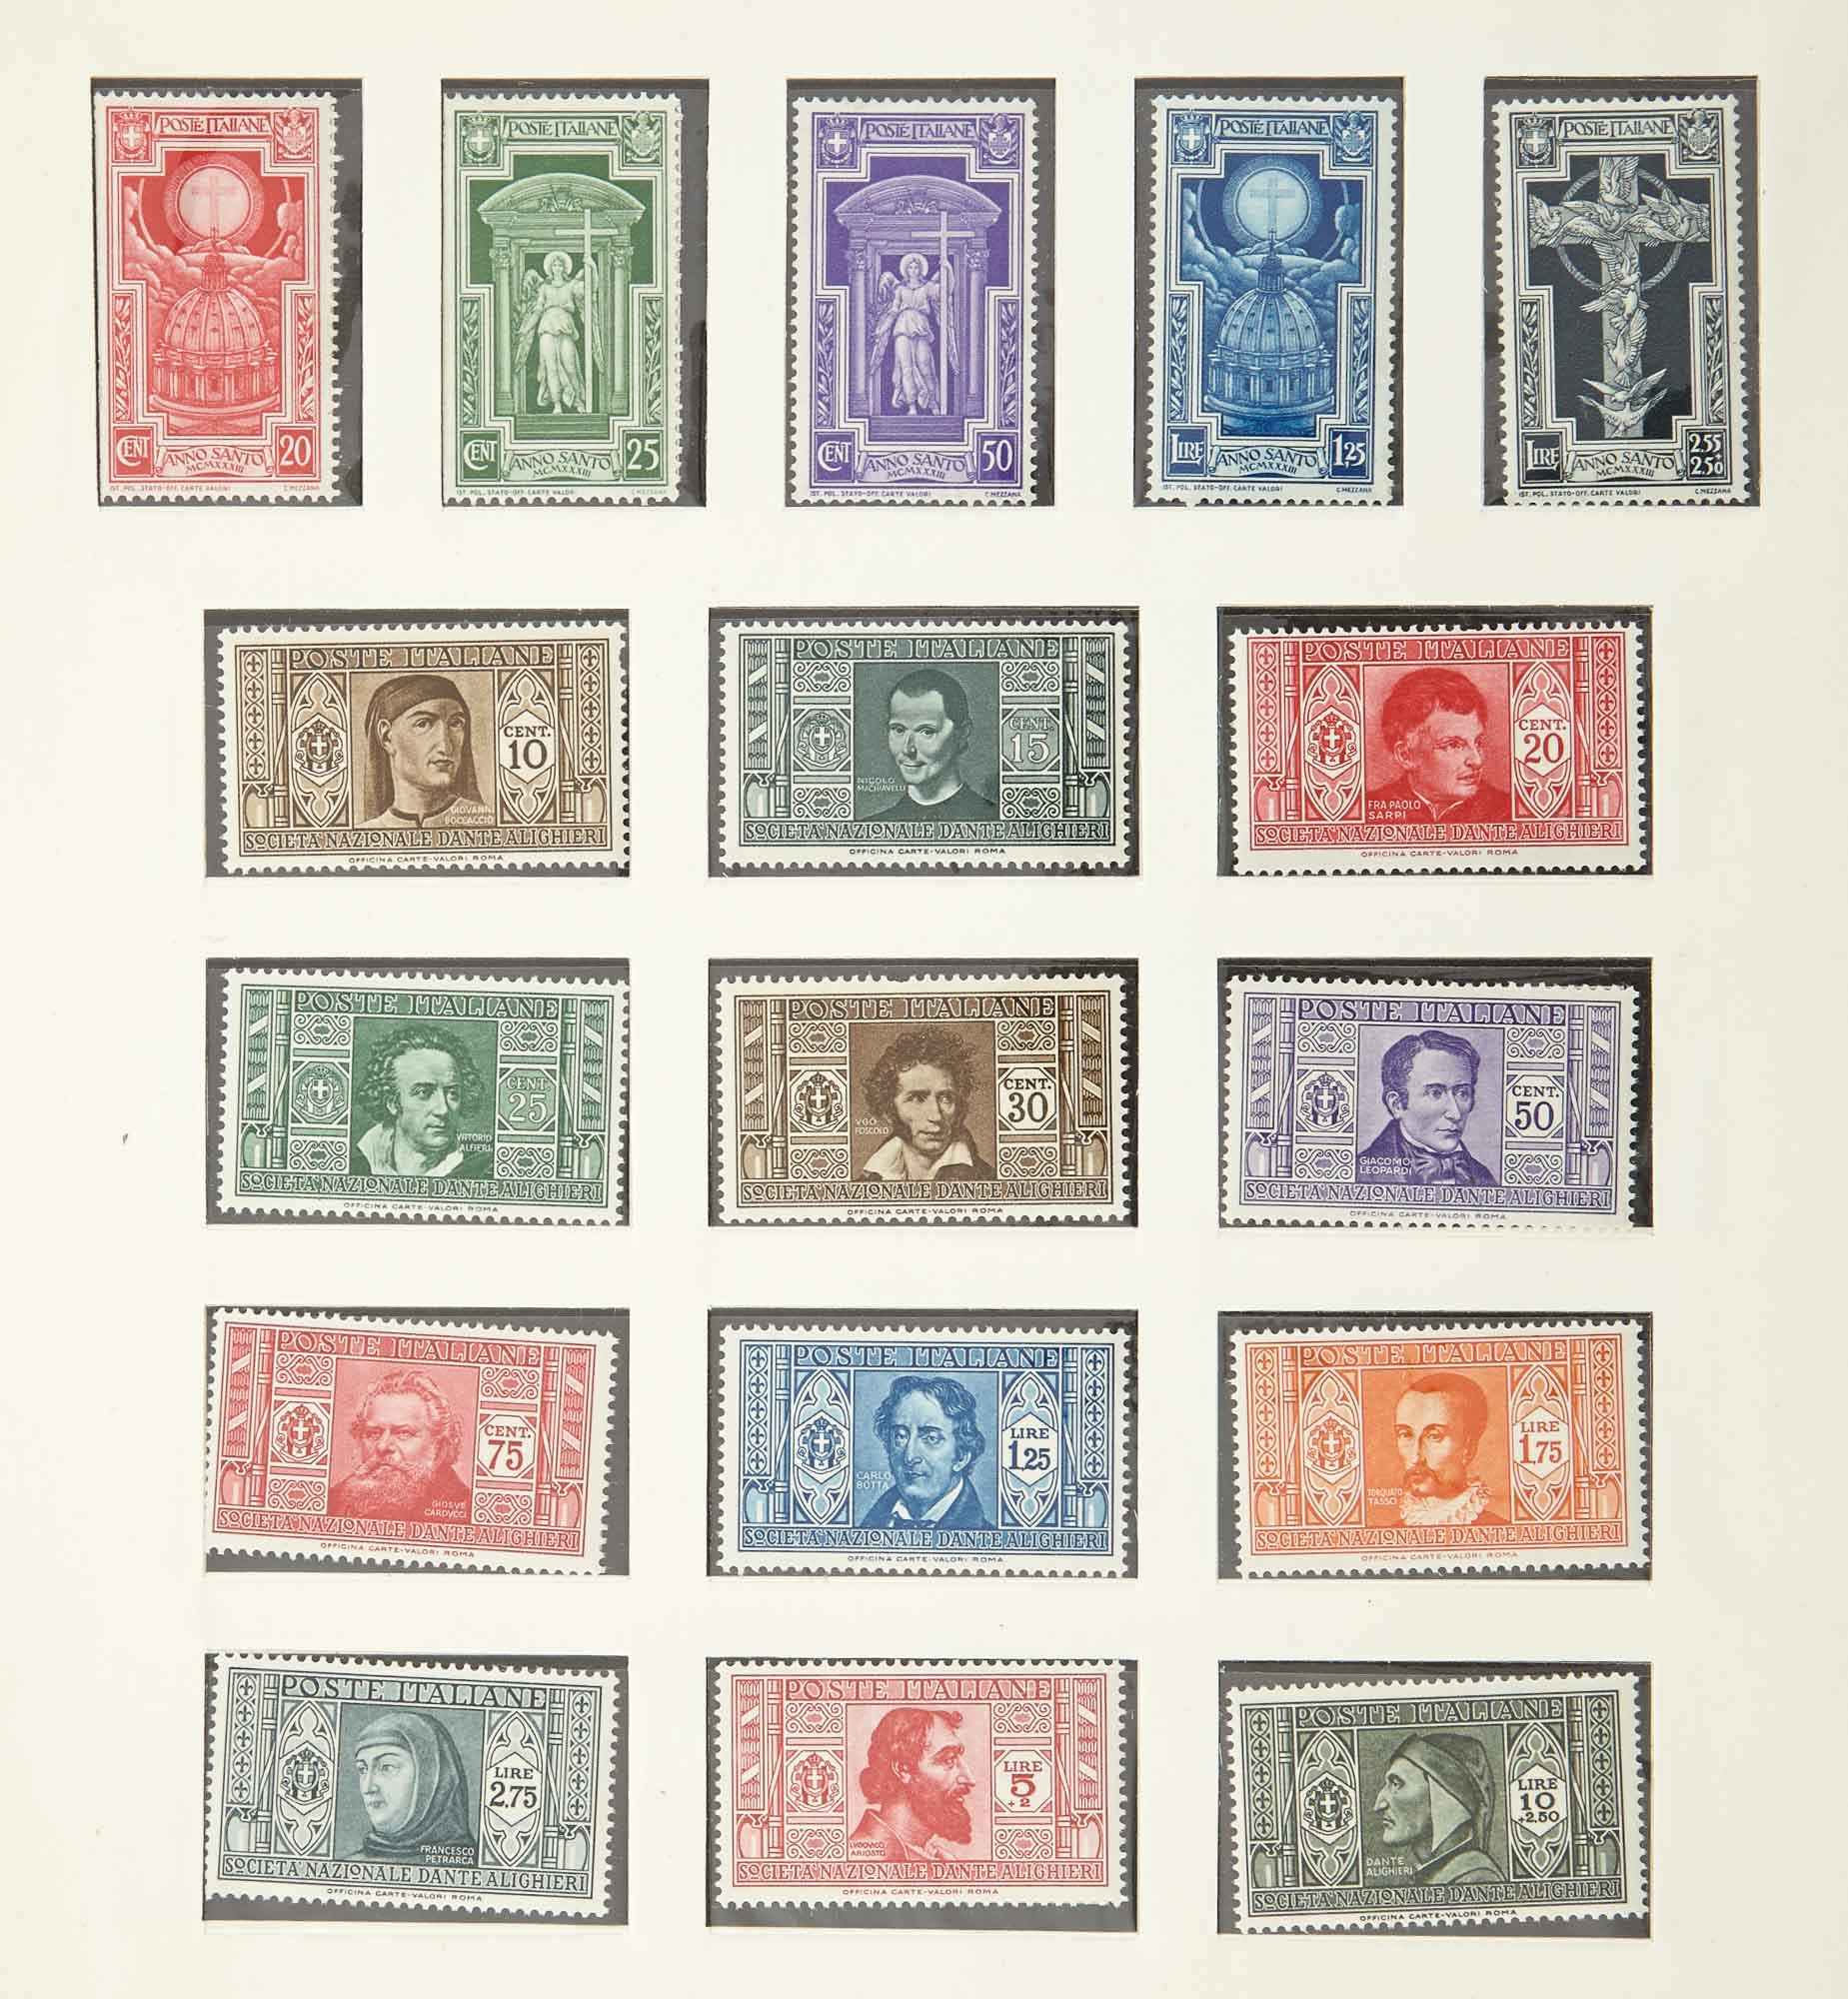 Lot image - Italy and Vatican Postage Stamp Collections